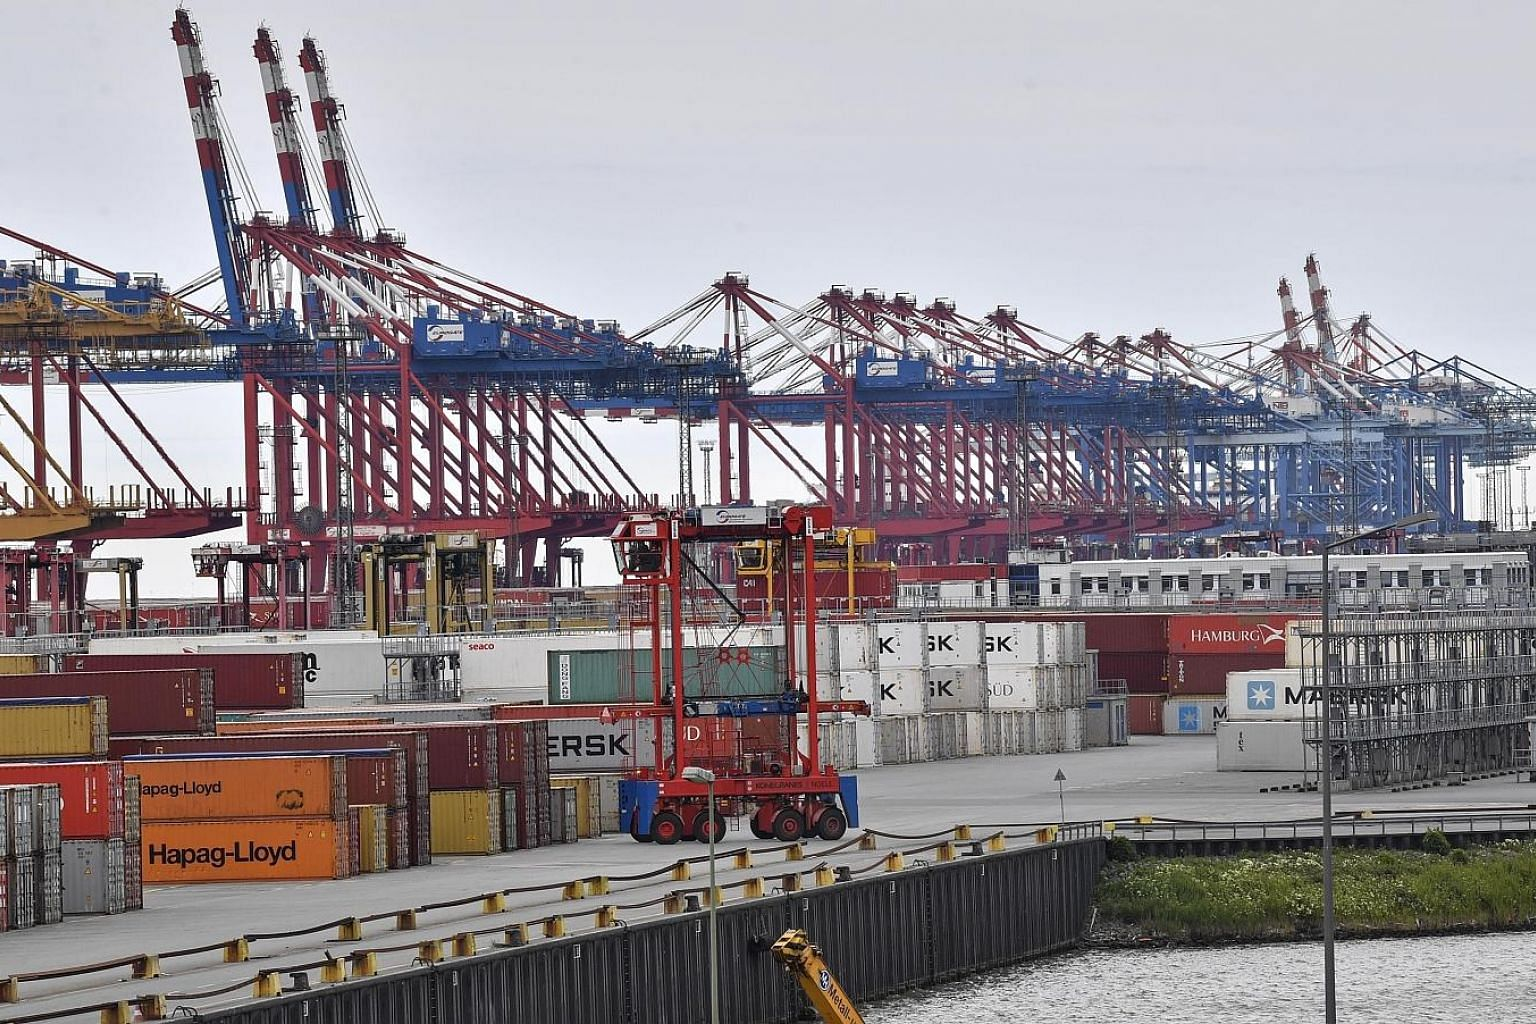 The free harbour in Bremerhaven, Germany. The German government said earlier that the country was not facing a bigger downturn or pronounced recession after contracting slightly in the second quarter. But several institutes have said that the economy